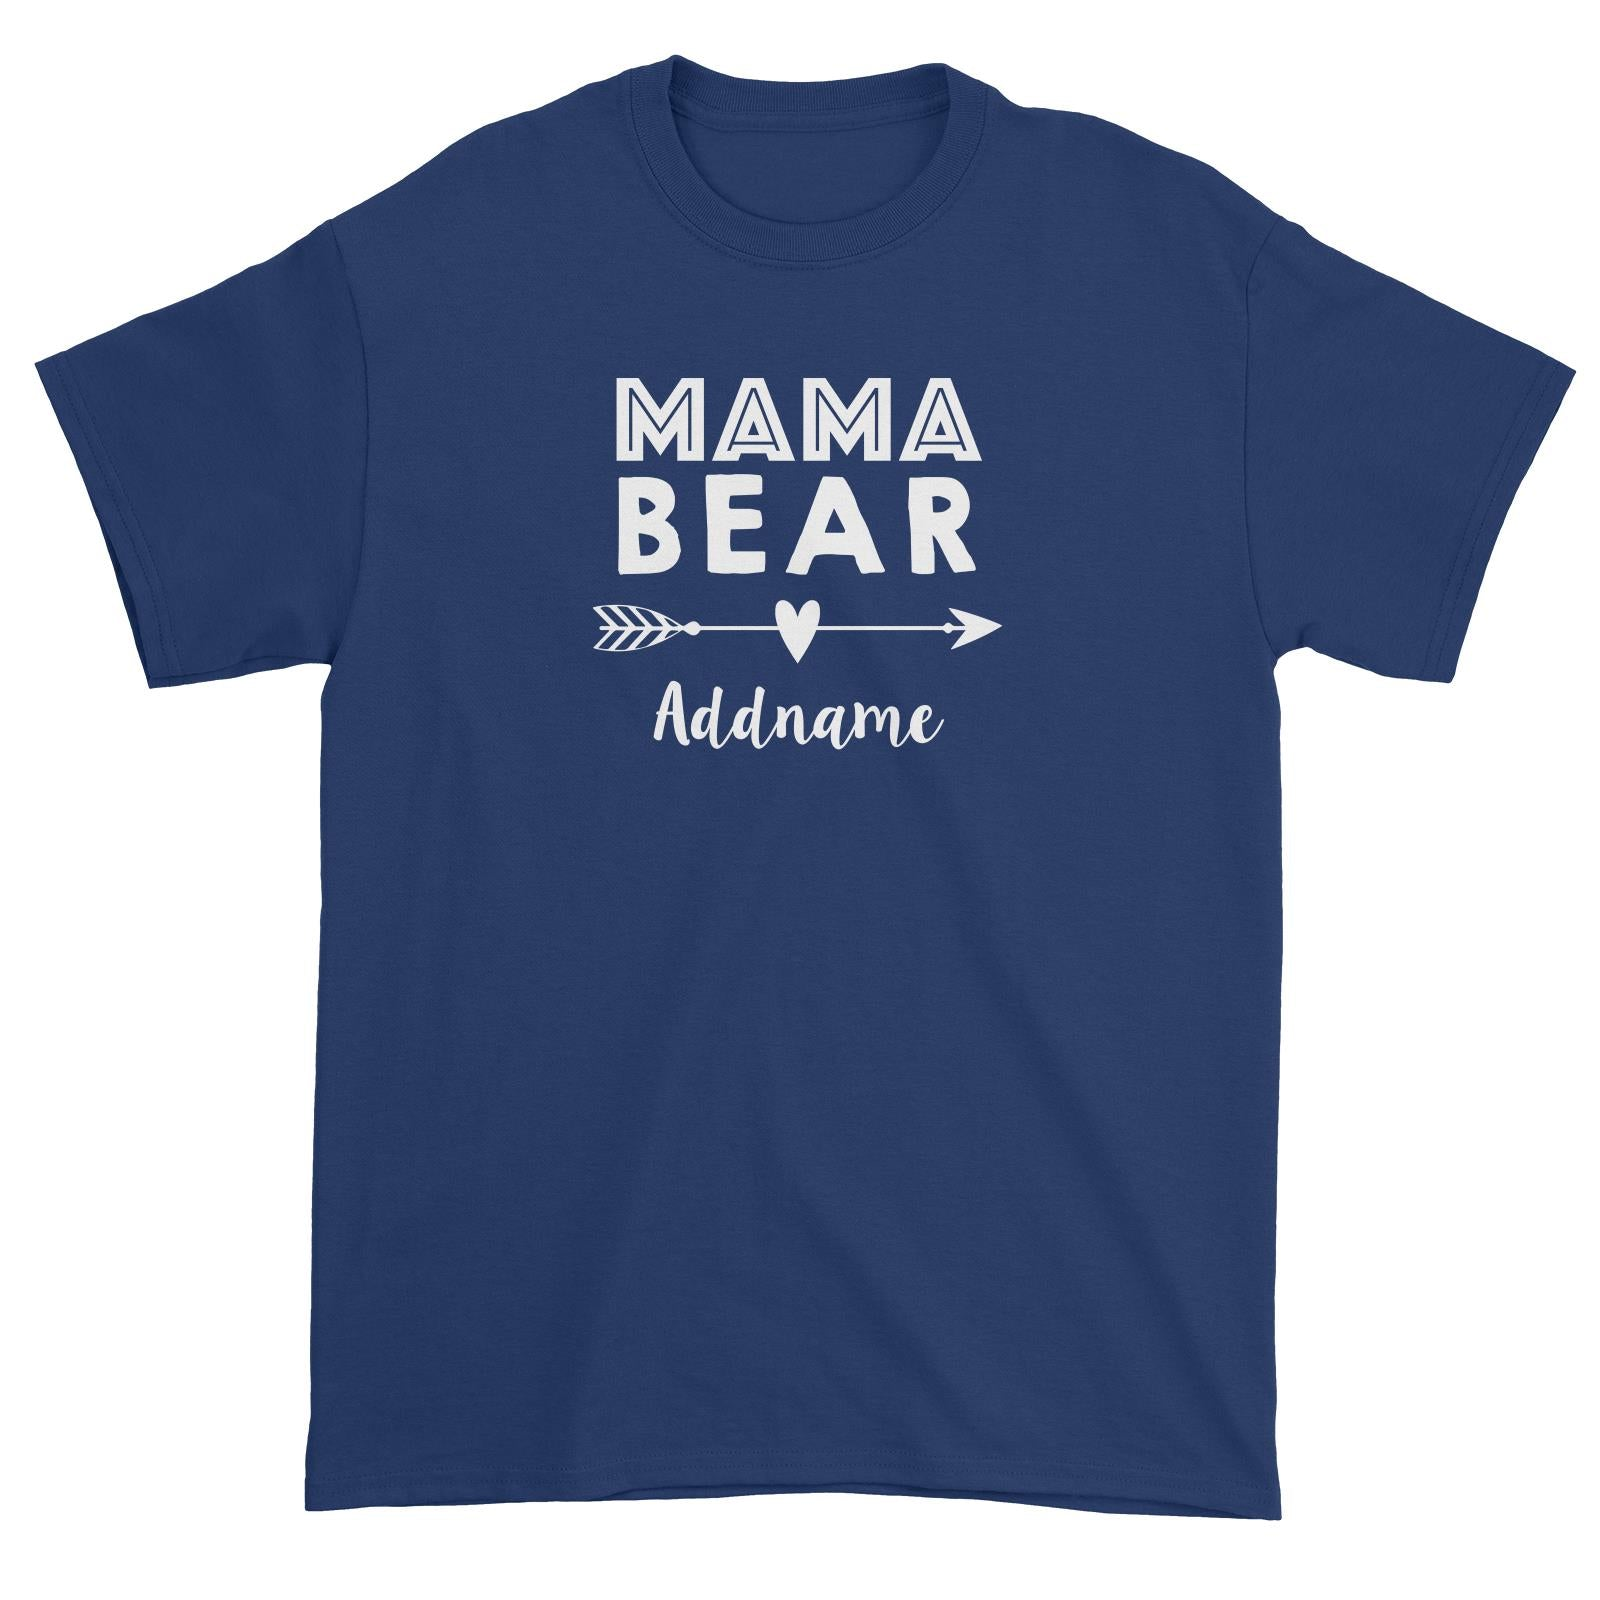 Mama Bear Addname Unisex T-Shirt  Matching Family Personalizable Designs